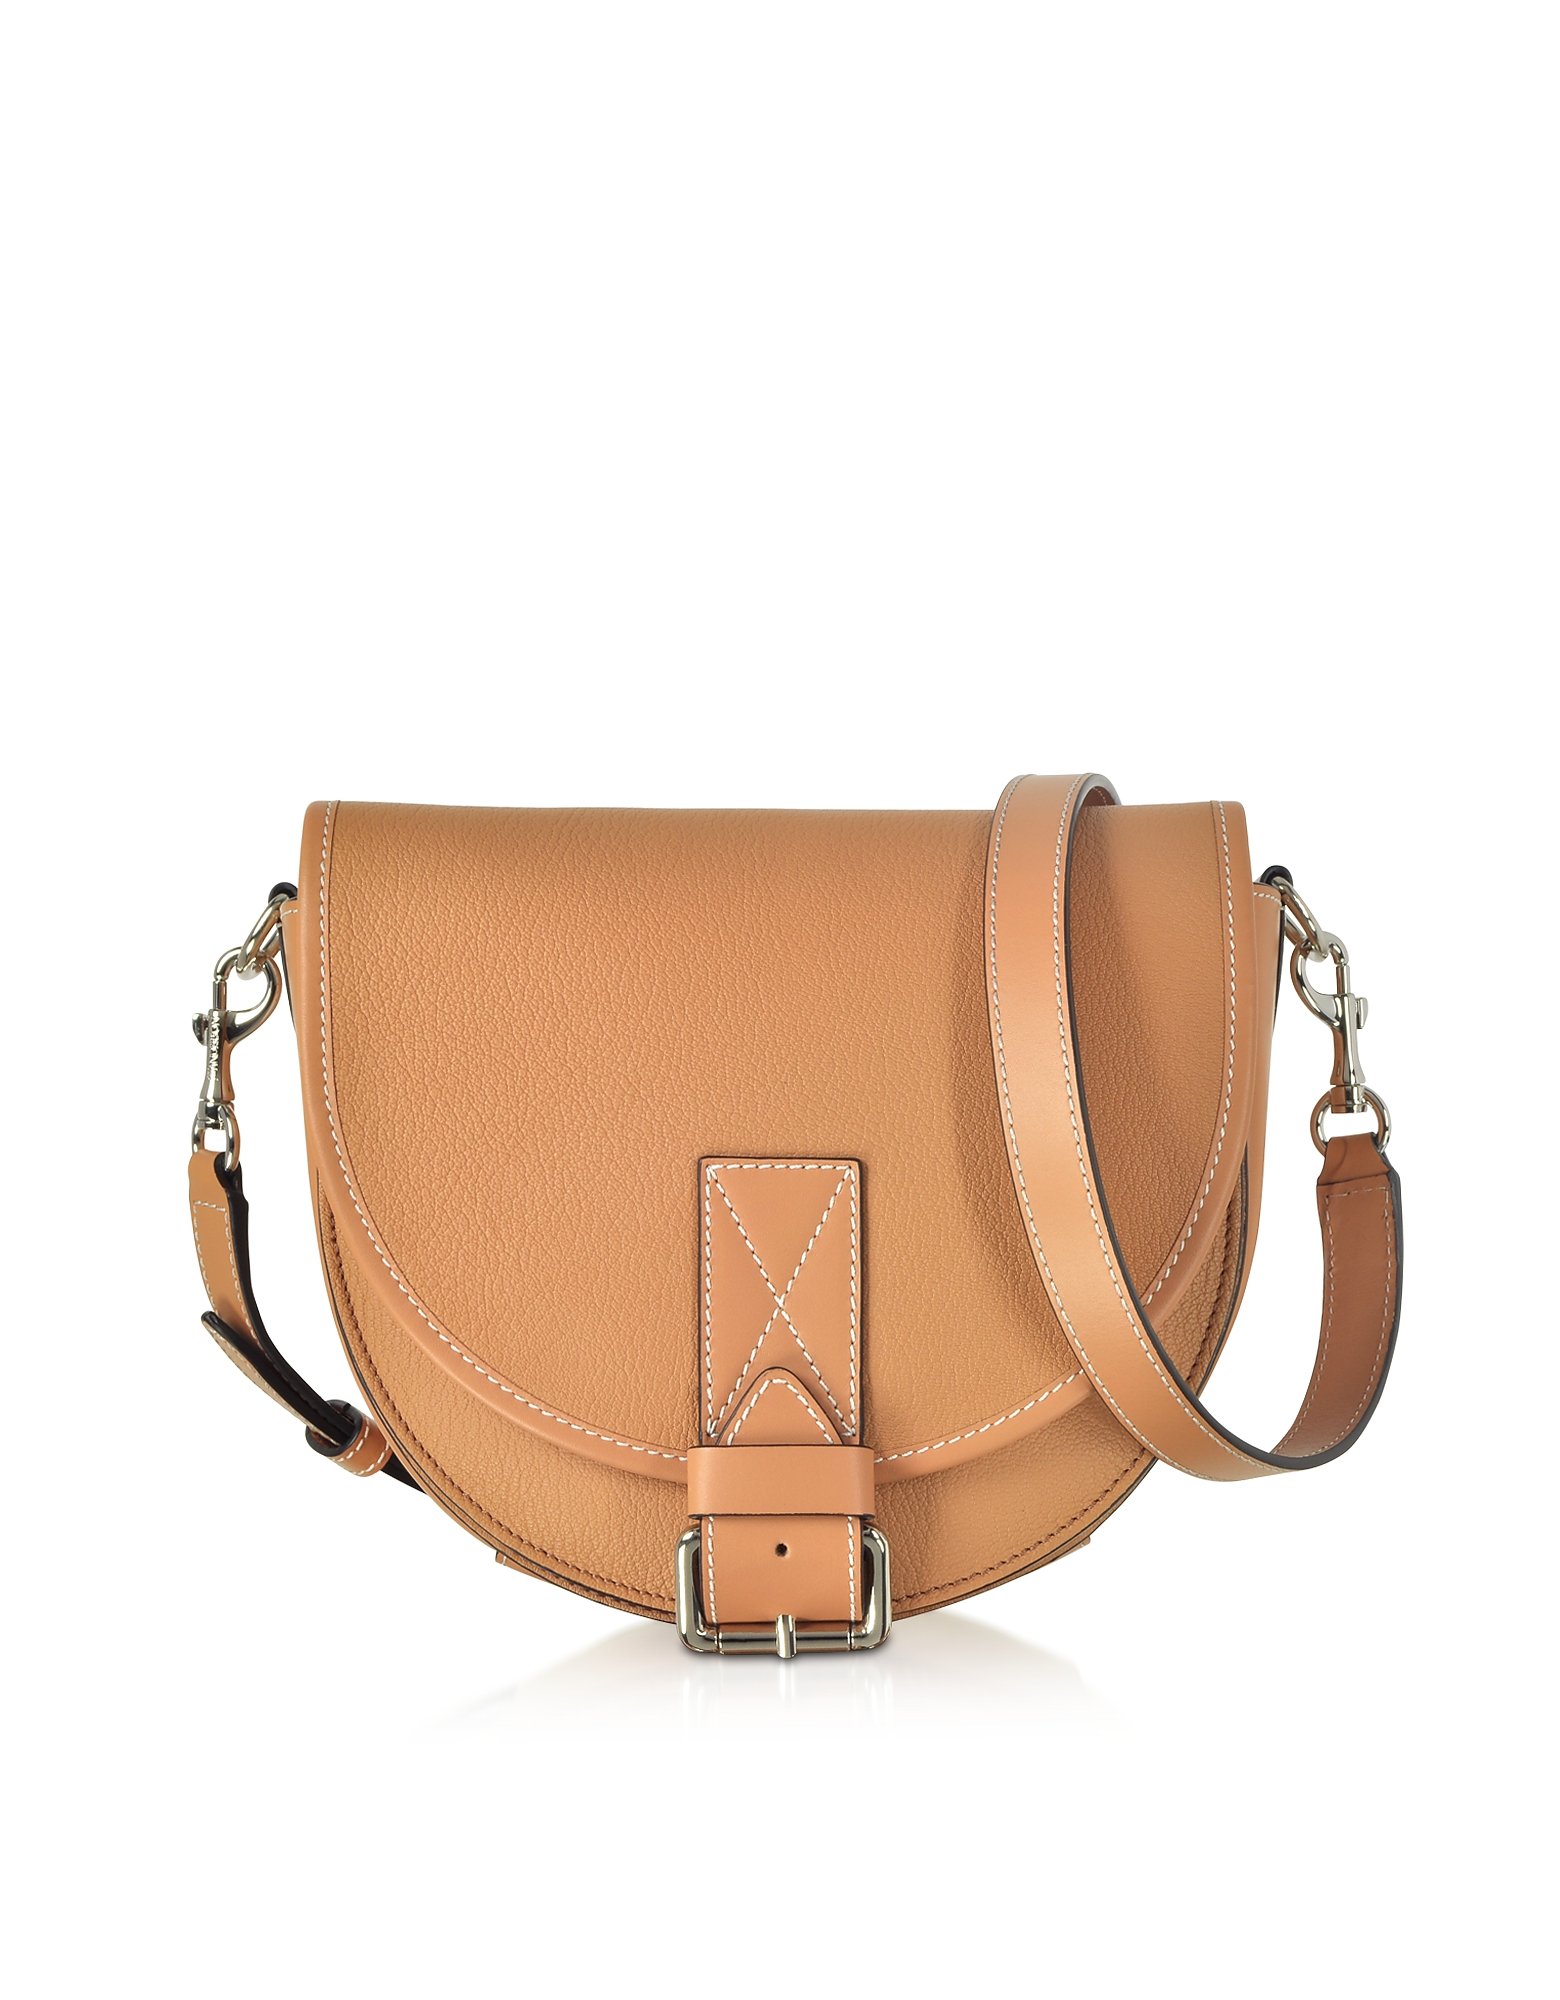 JW Anderson Handbags, Caramel Small Bike Bag